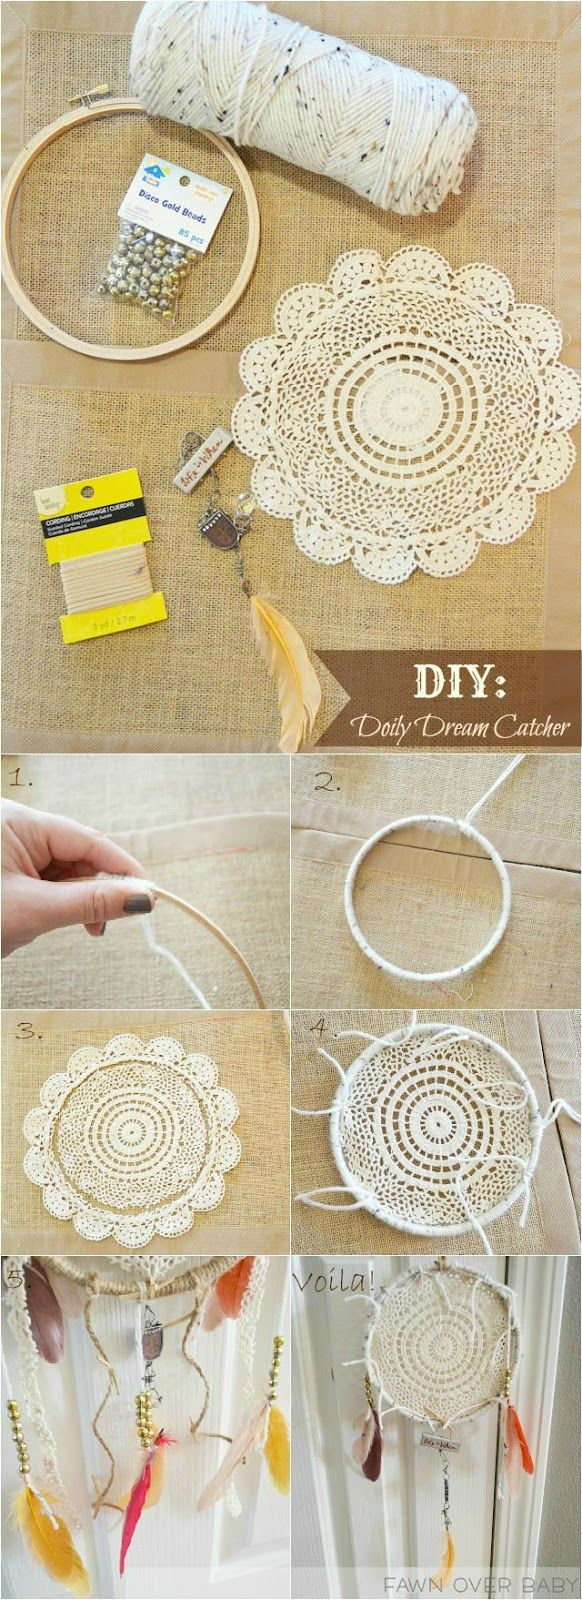 Photo of DIY: Doily Dream Catcher